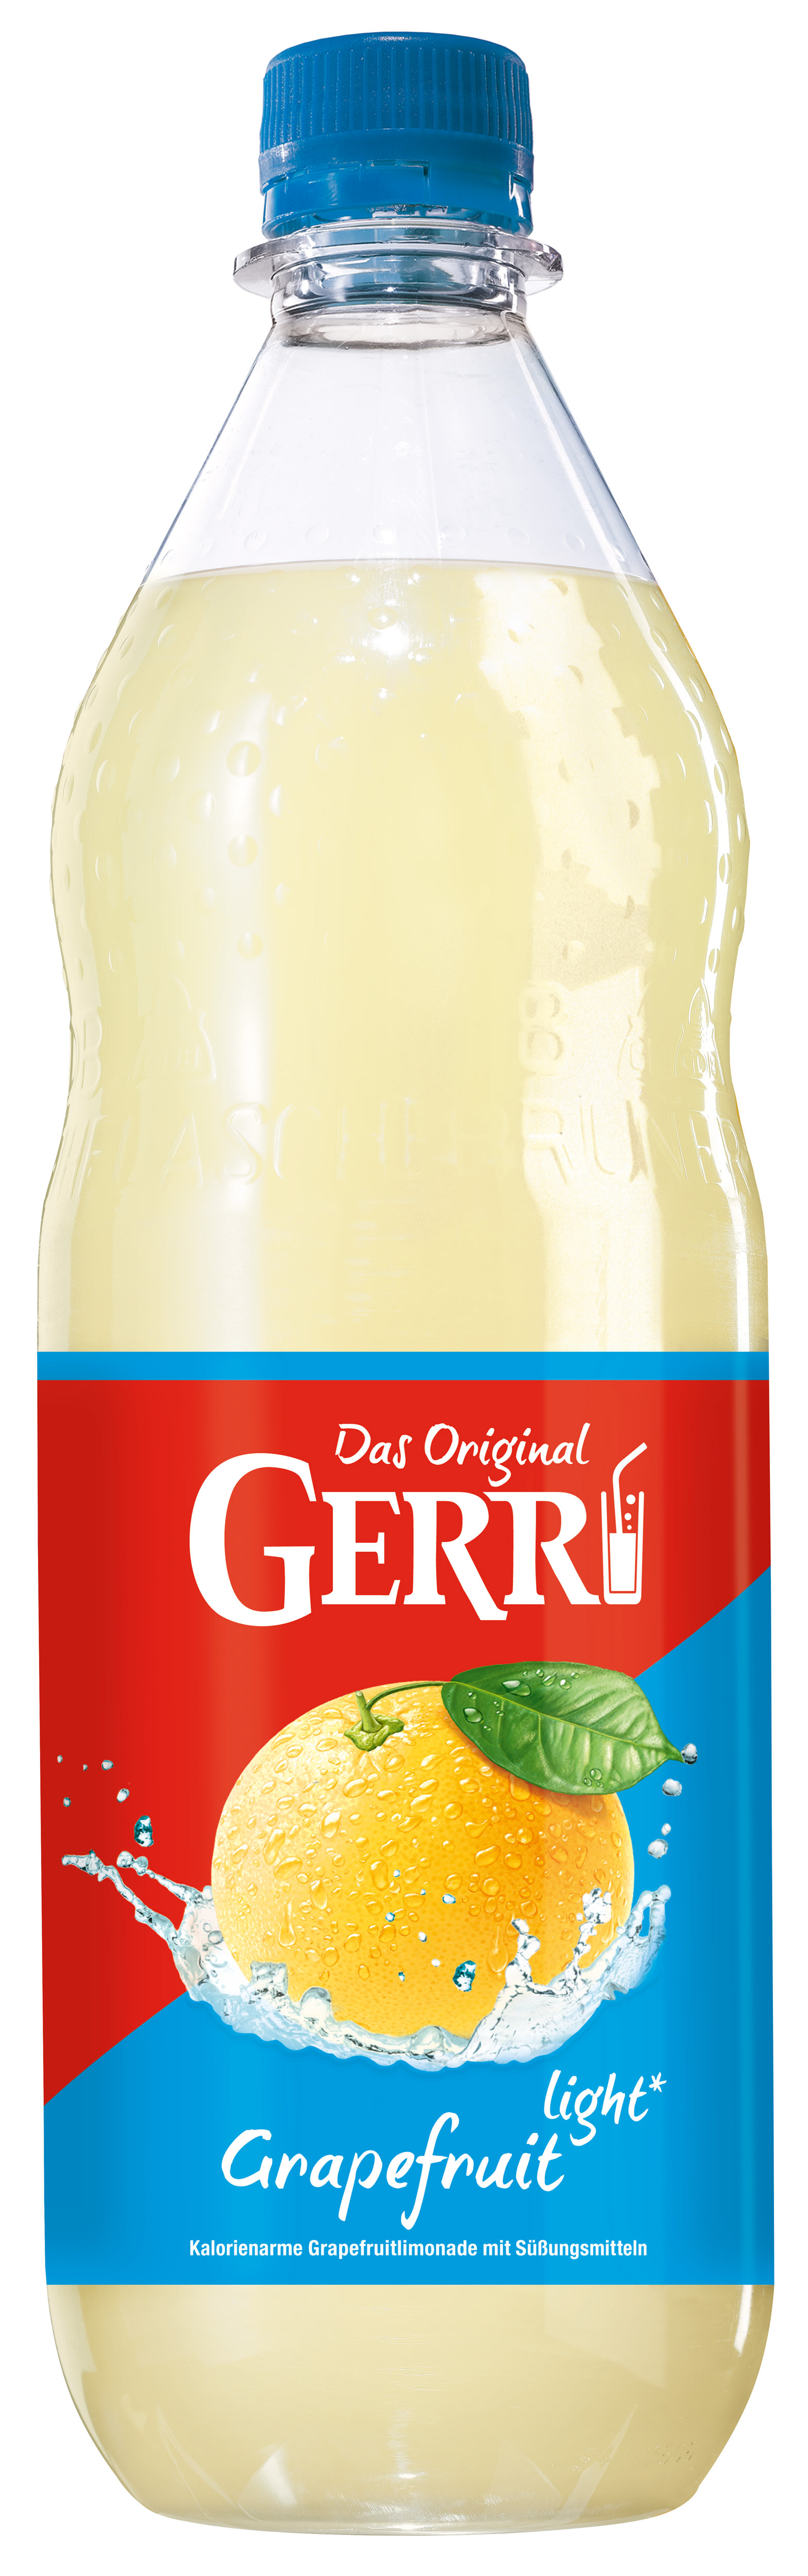 Gerri Grapefruit Light 1 l PET Mehrweg